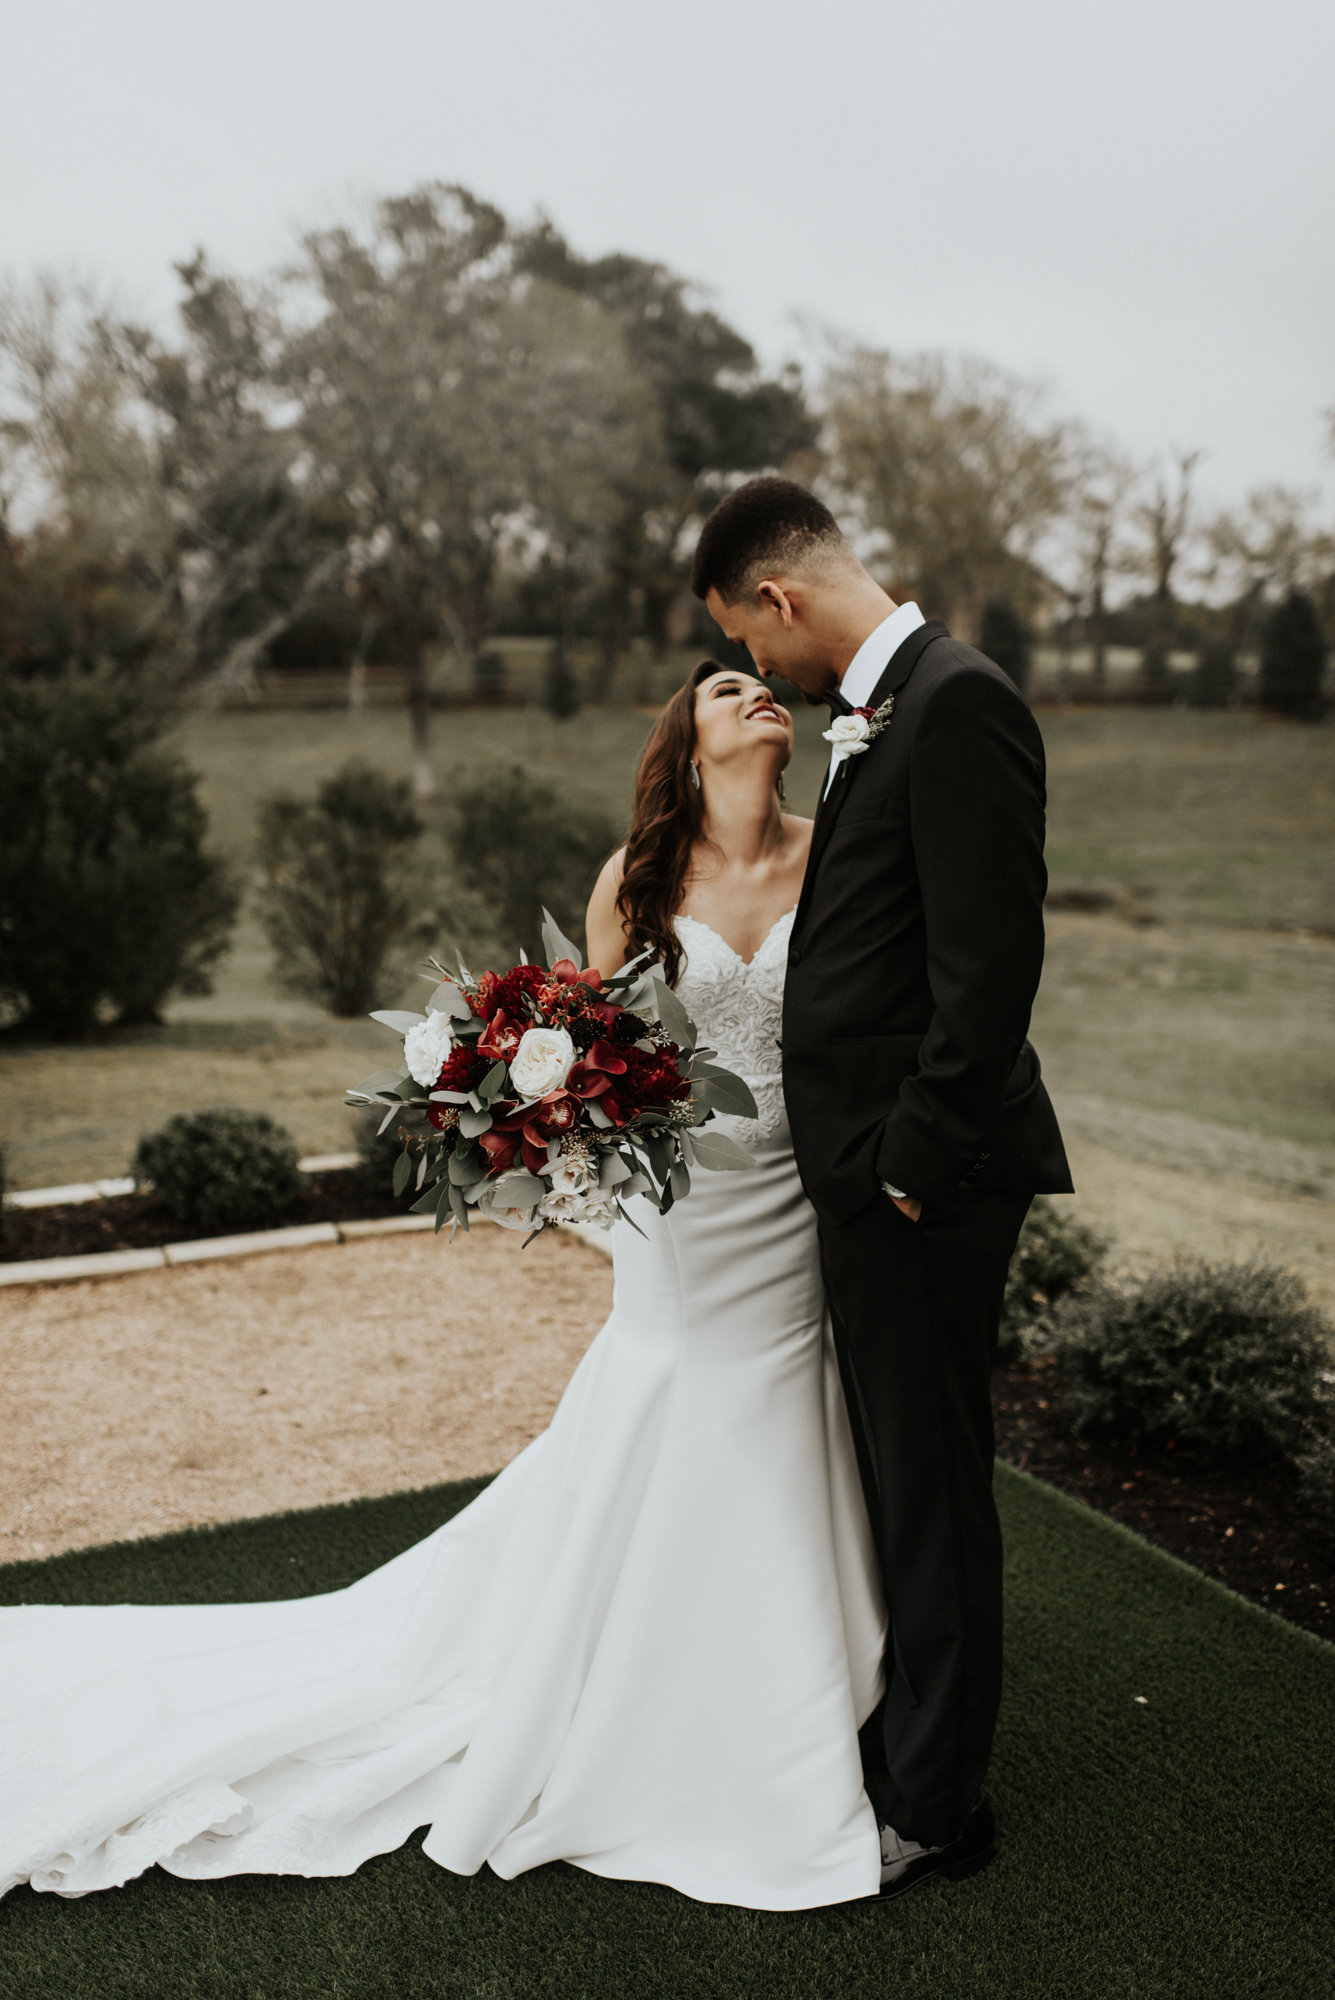 Intimate Destination Wedding Photographer, The Farmhouse in Houston, TX